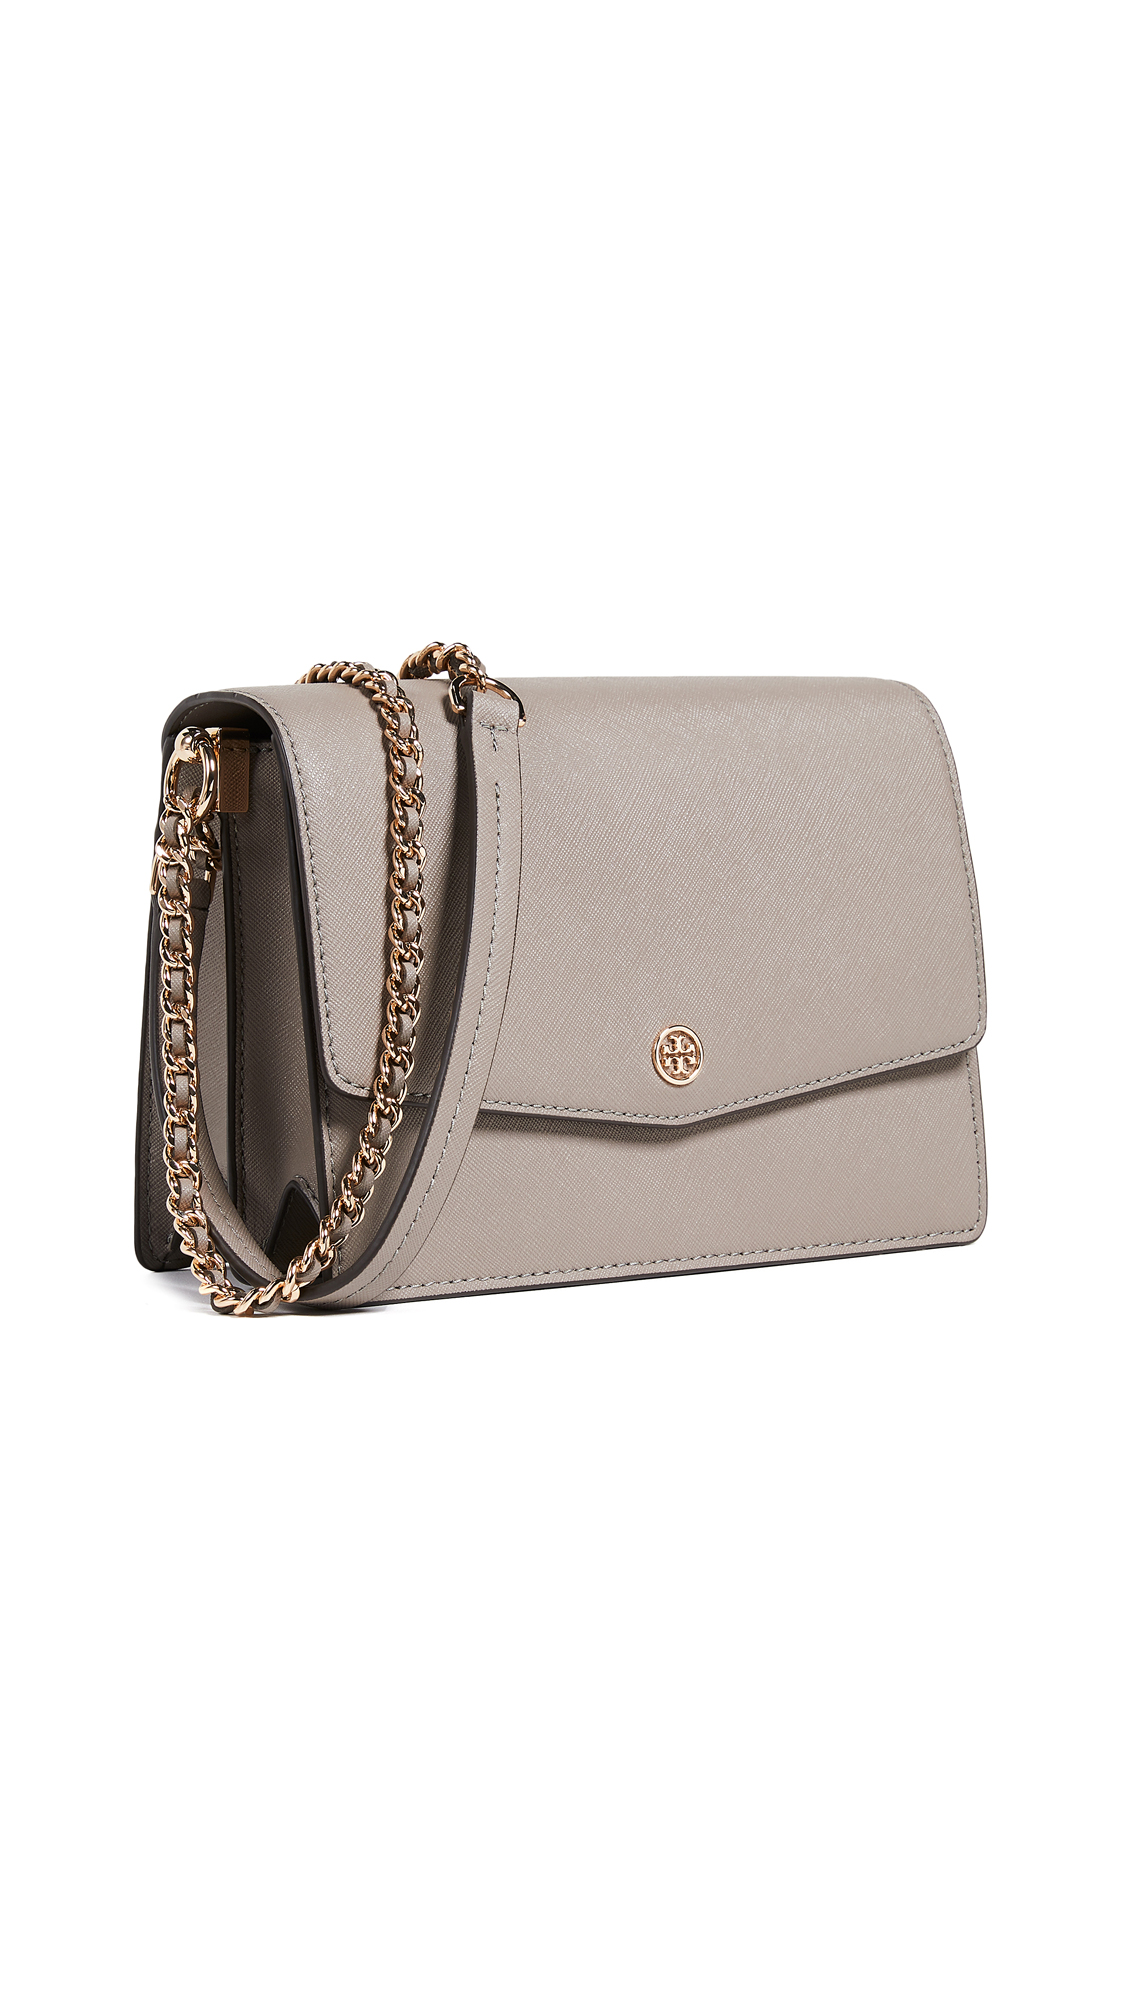 Tory Burch Robinson Converible Shoulder Bag